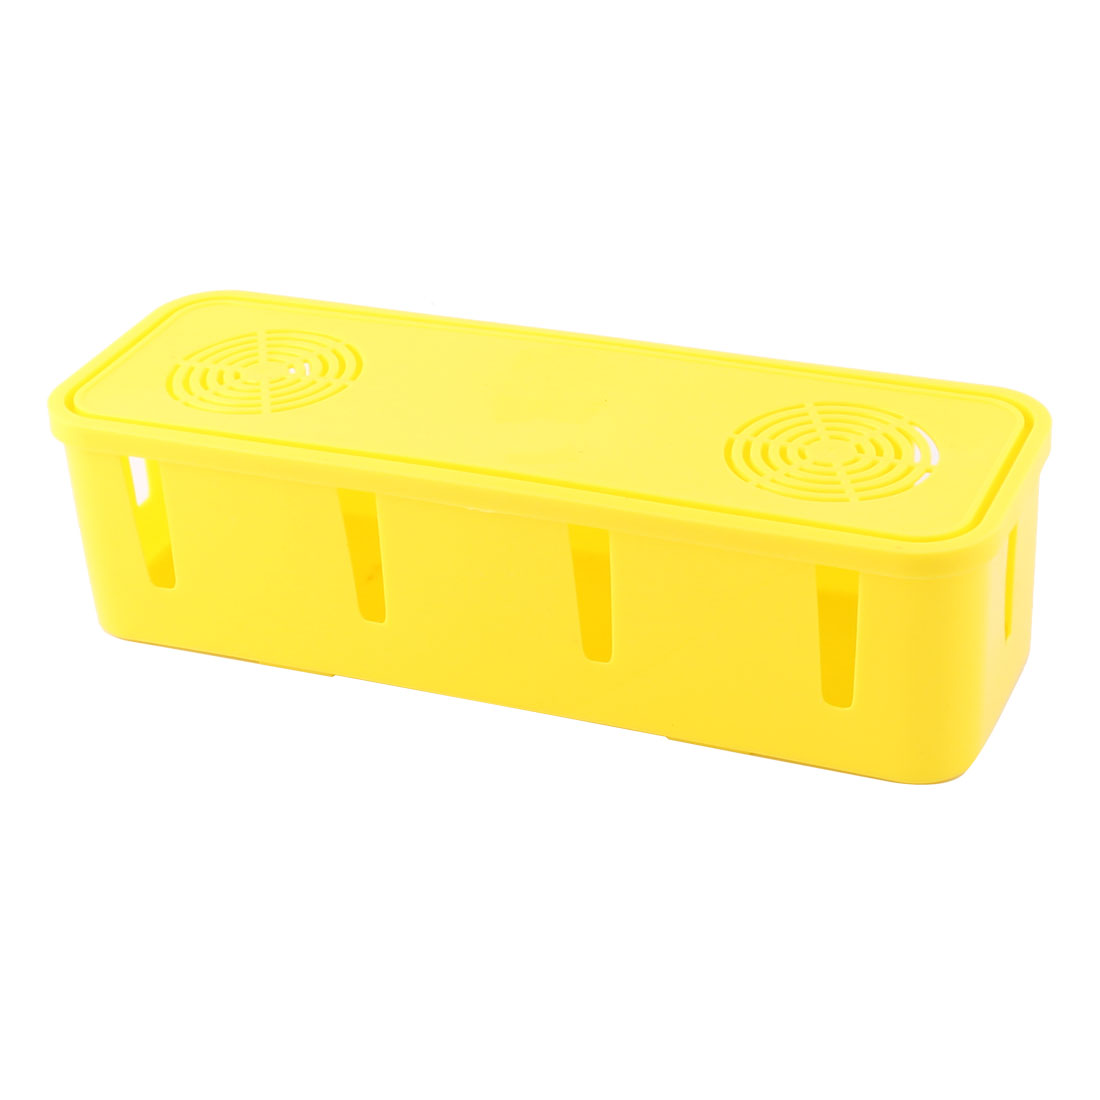 Household Plastic Rectangle Shape Power Cord Socket Storage Case Box Yellow